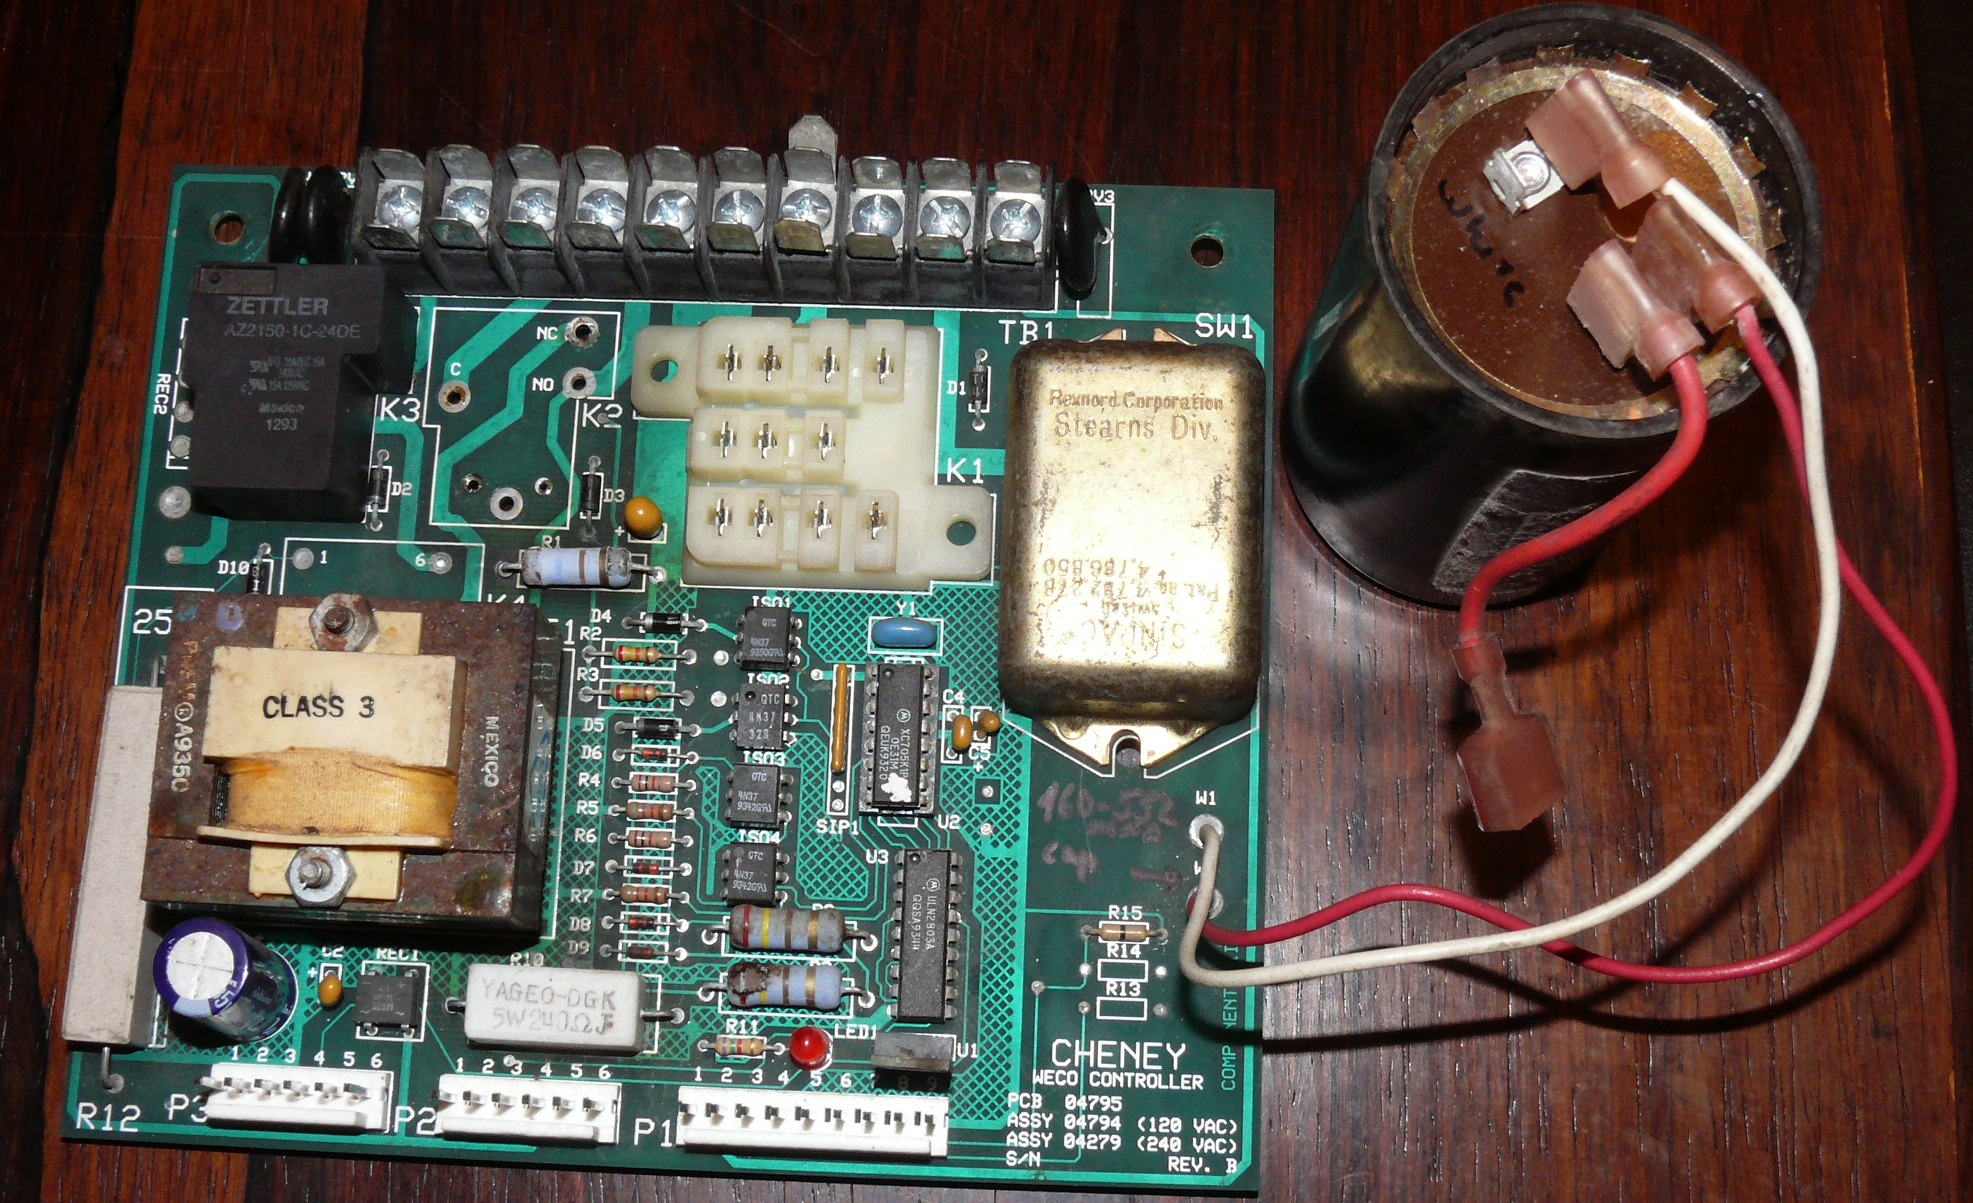 picture of the Cheny WECO controller circuit board (component side}